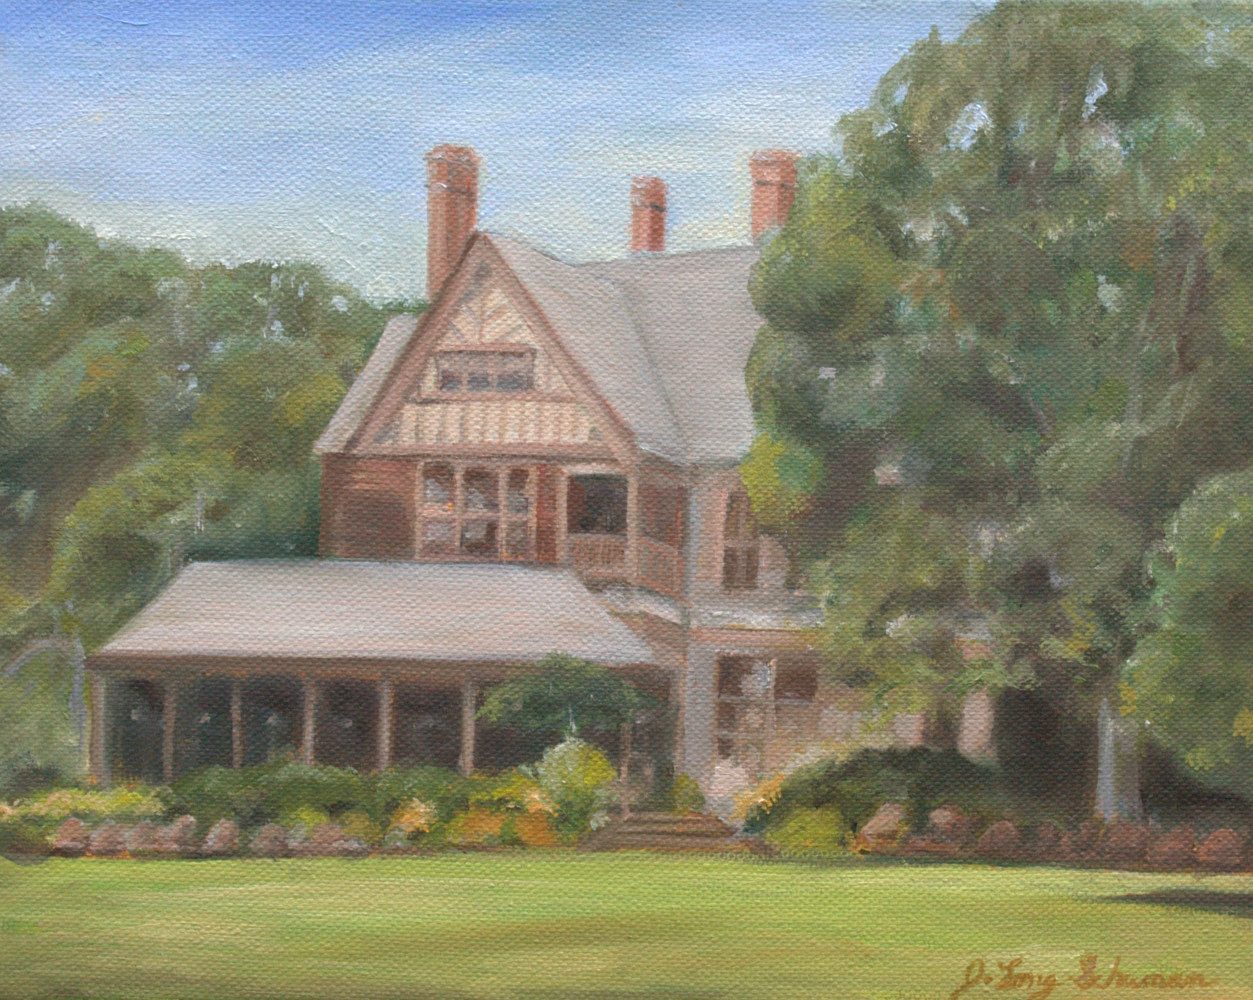 Oil painting Bayard Porch by June Long-schuman